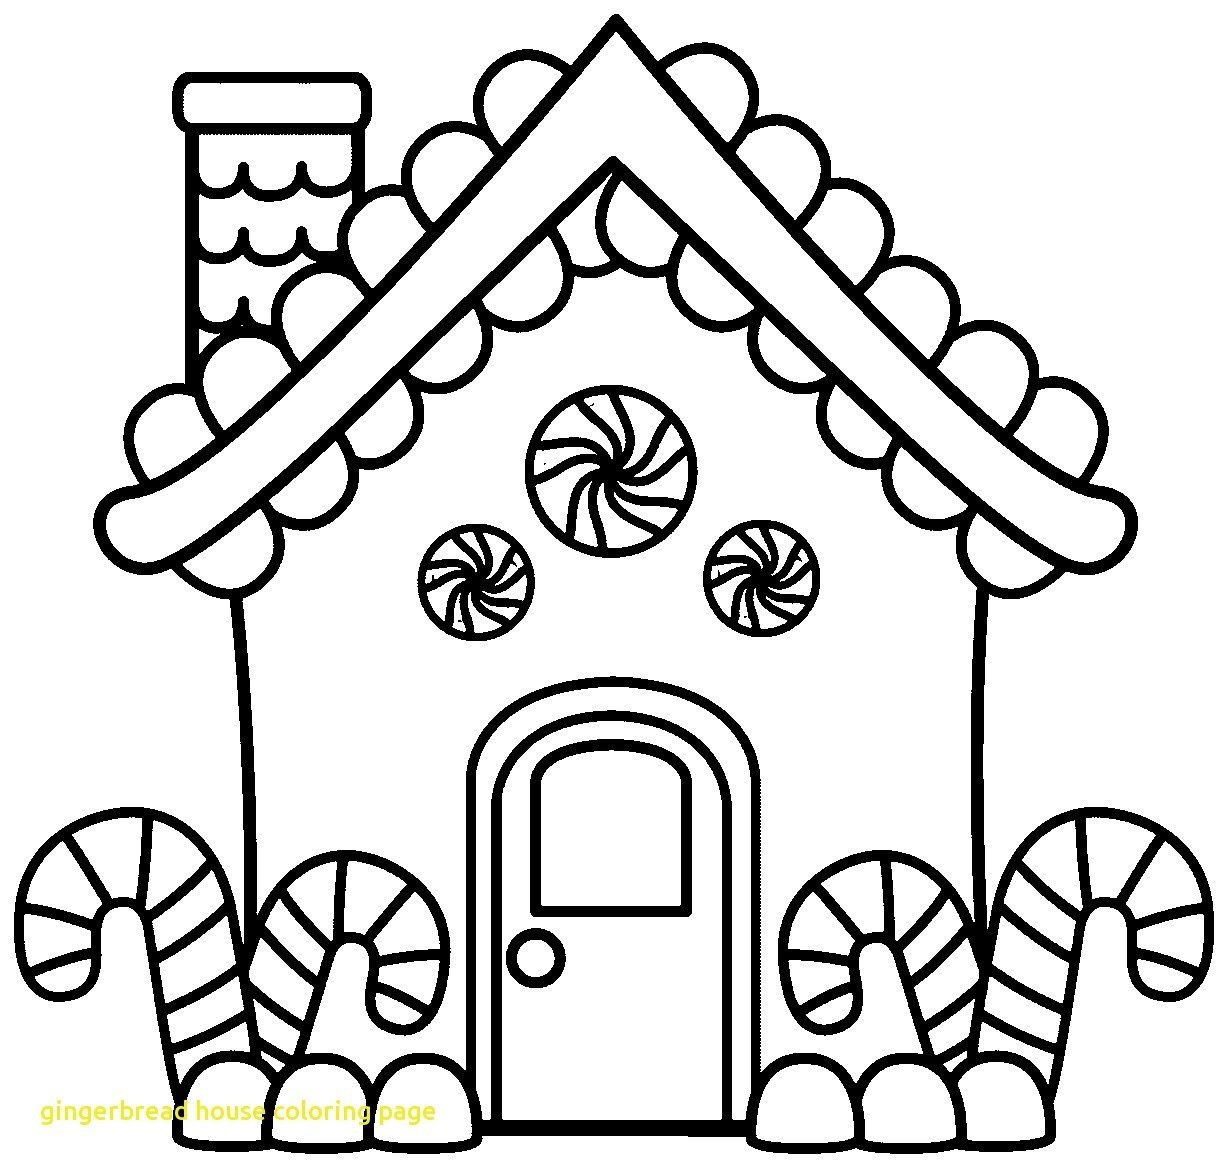 Christmas House Coloring With Gingerbread Color Page CHRISTMAS COLORING How To Draw And A